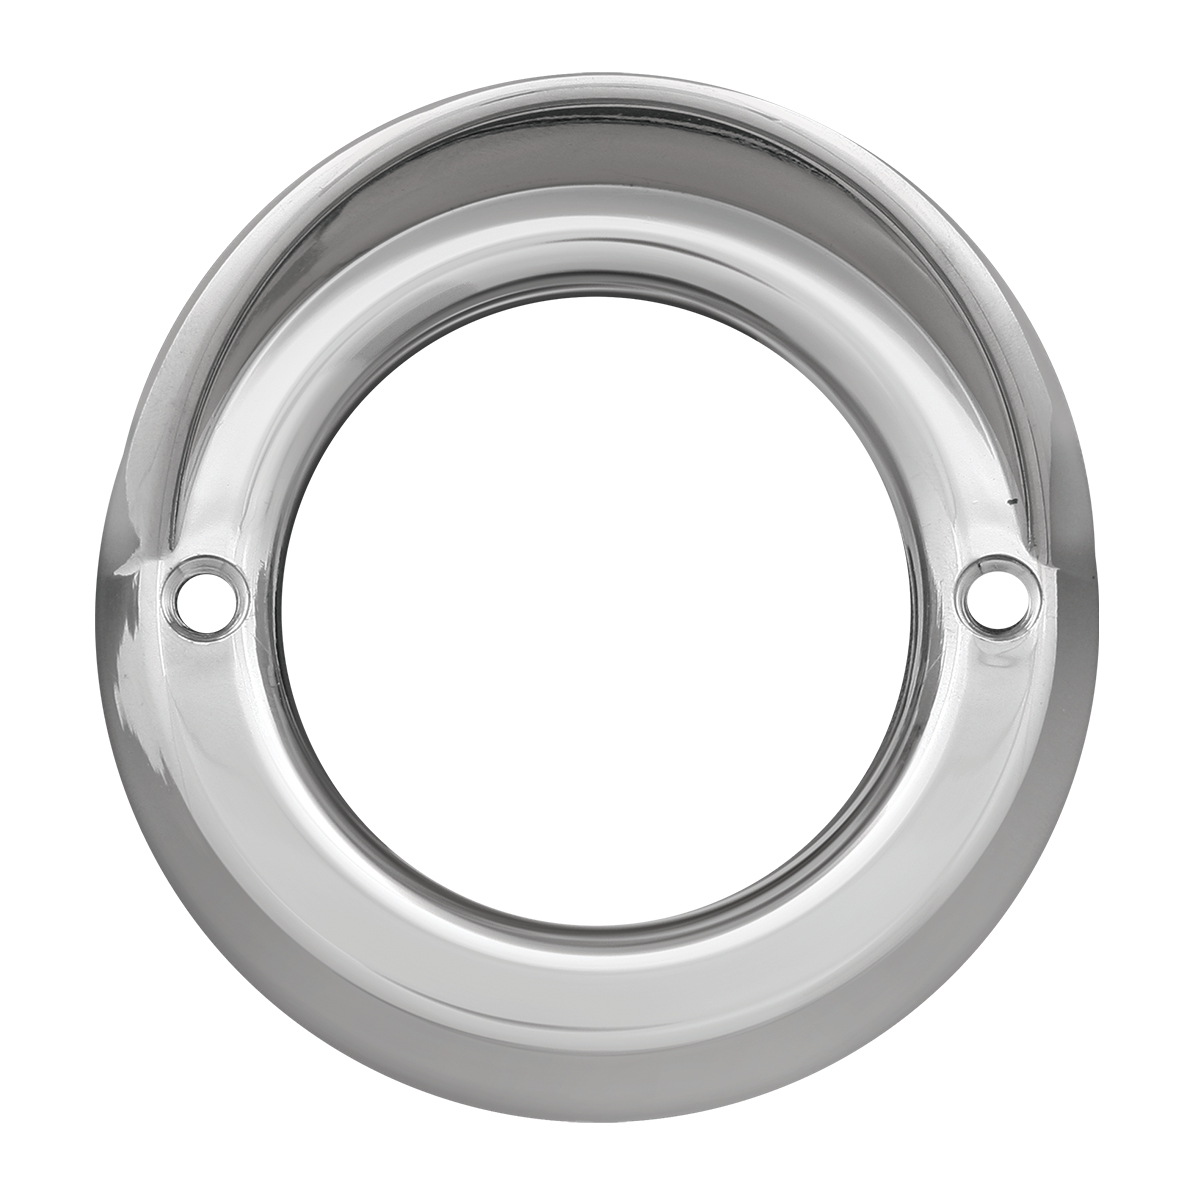 "80716 Chrome Plastic Grommet Cover w/ Visor for 2.5"" Round Light"